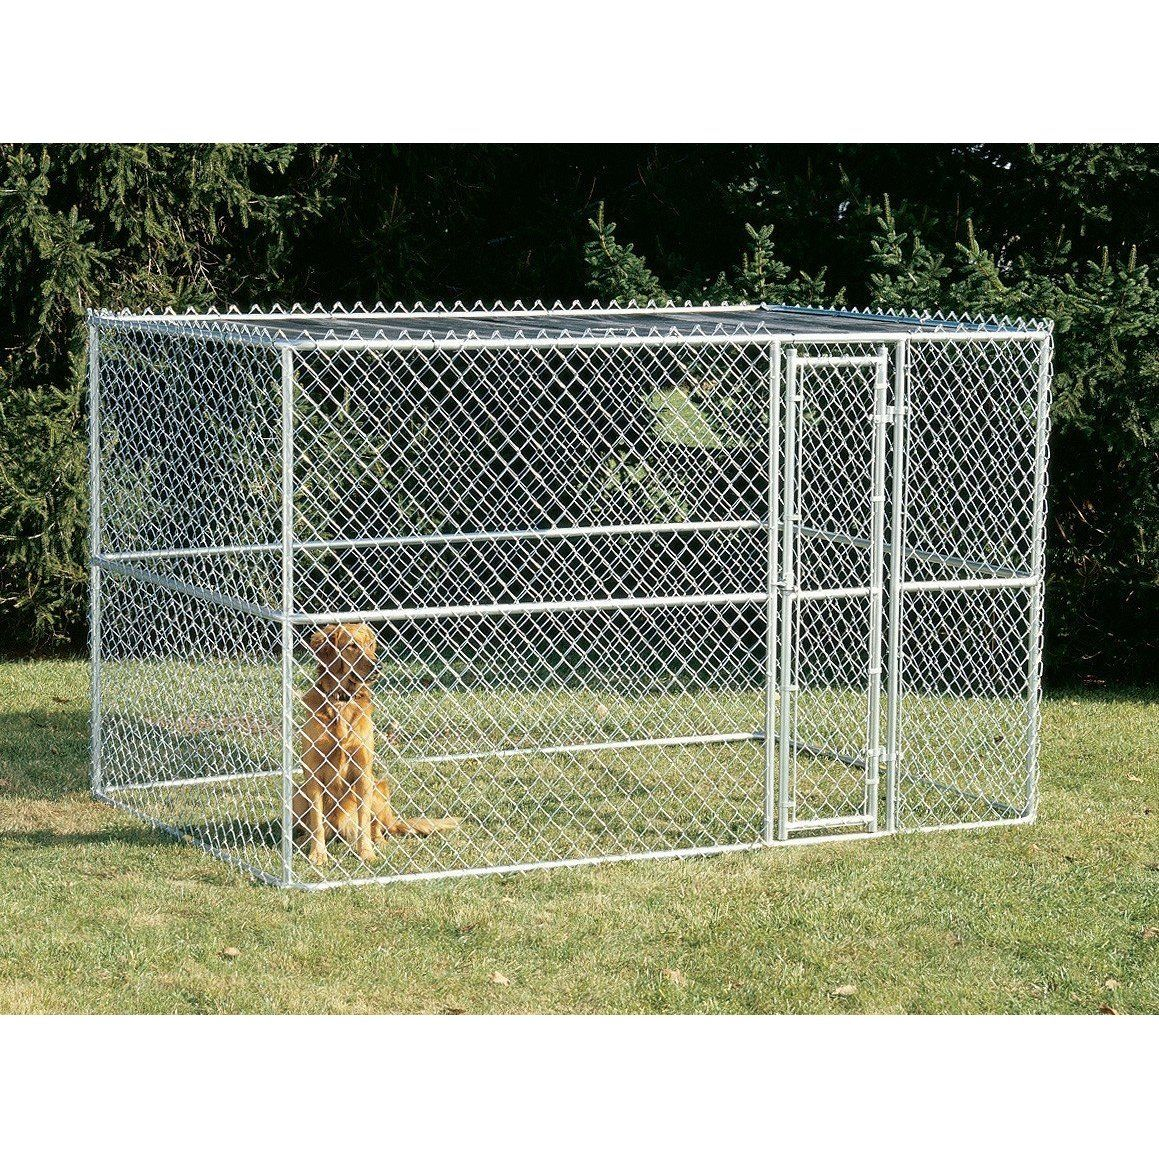 Midwest K 9 Chain Link Dog Kennel Chain Link Dog Kennel